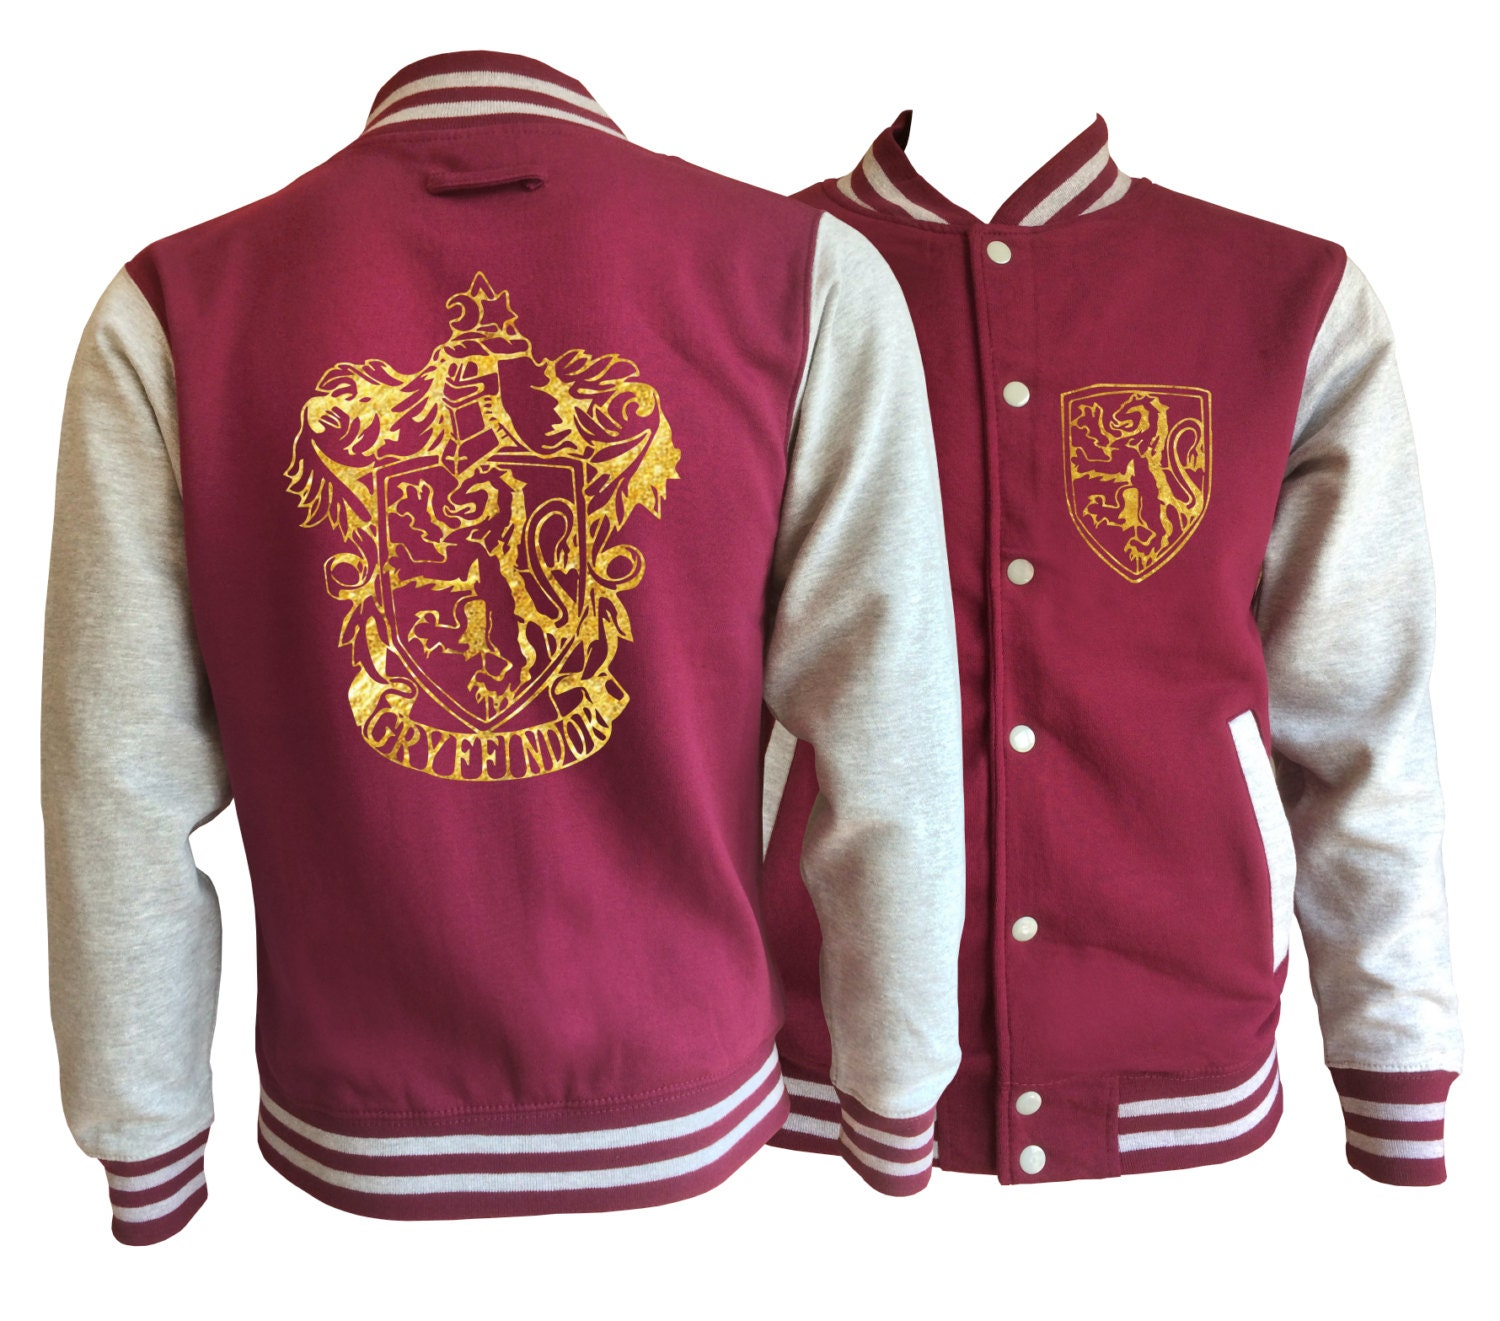 Vintage style Harry potter Inspired Gryffindor House varsity jacket with gold emblem in front and back.  Amazing!